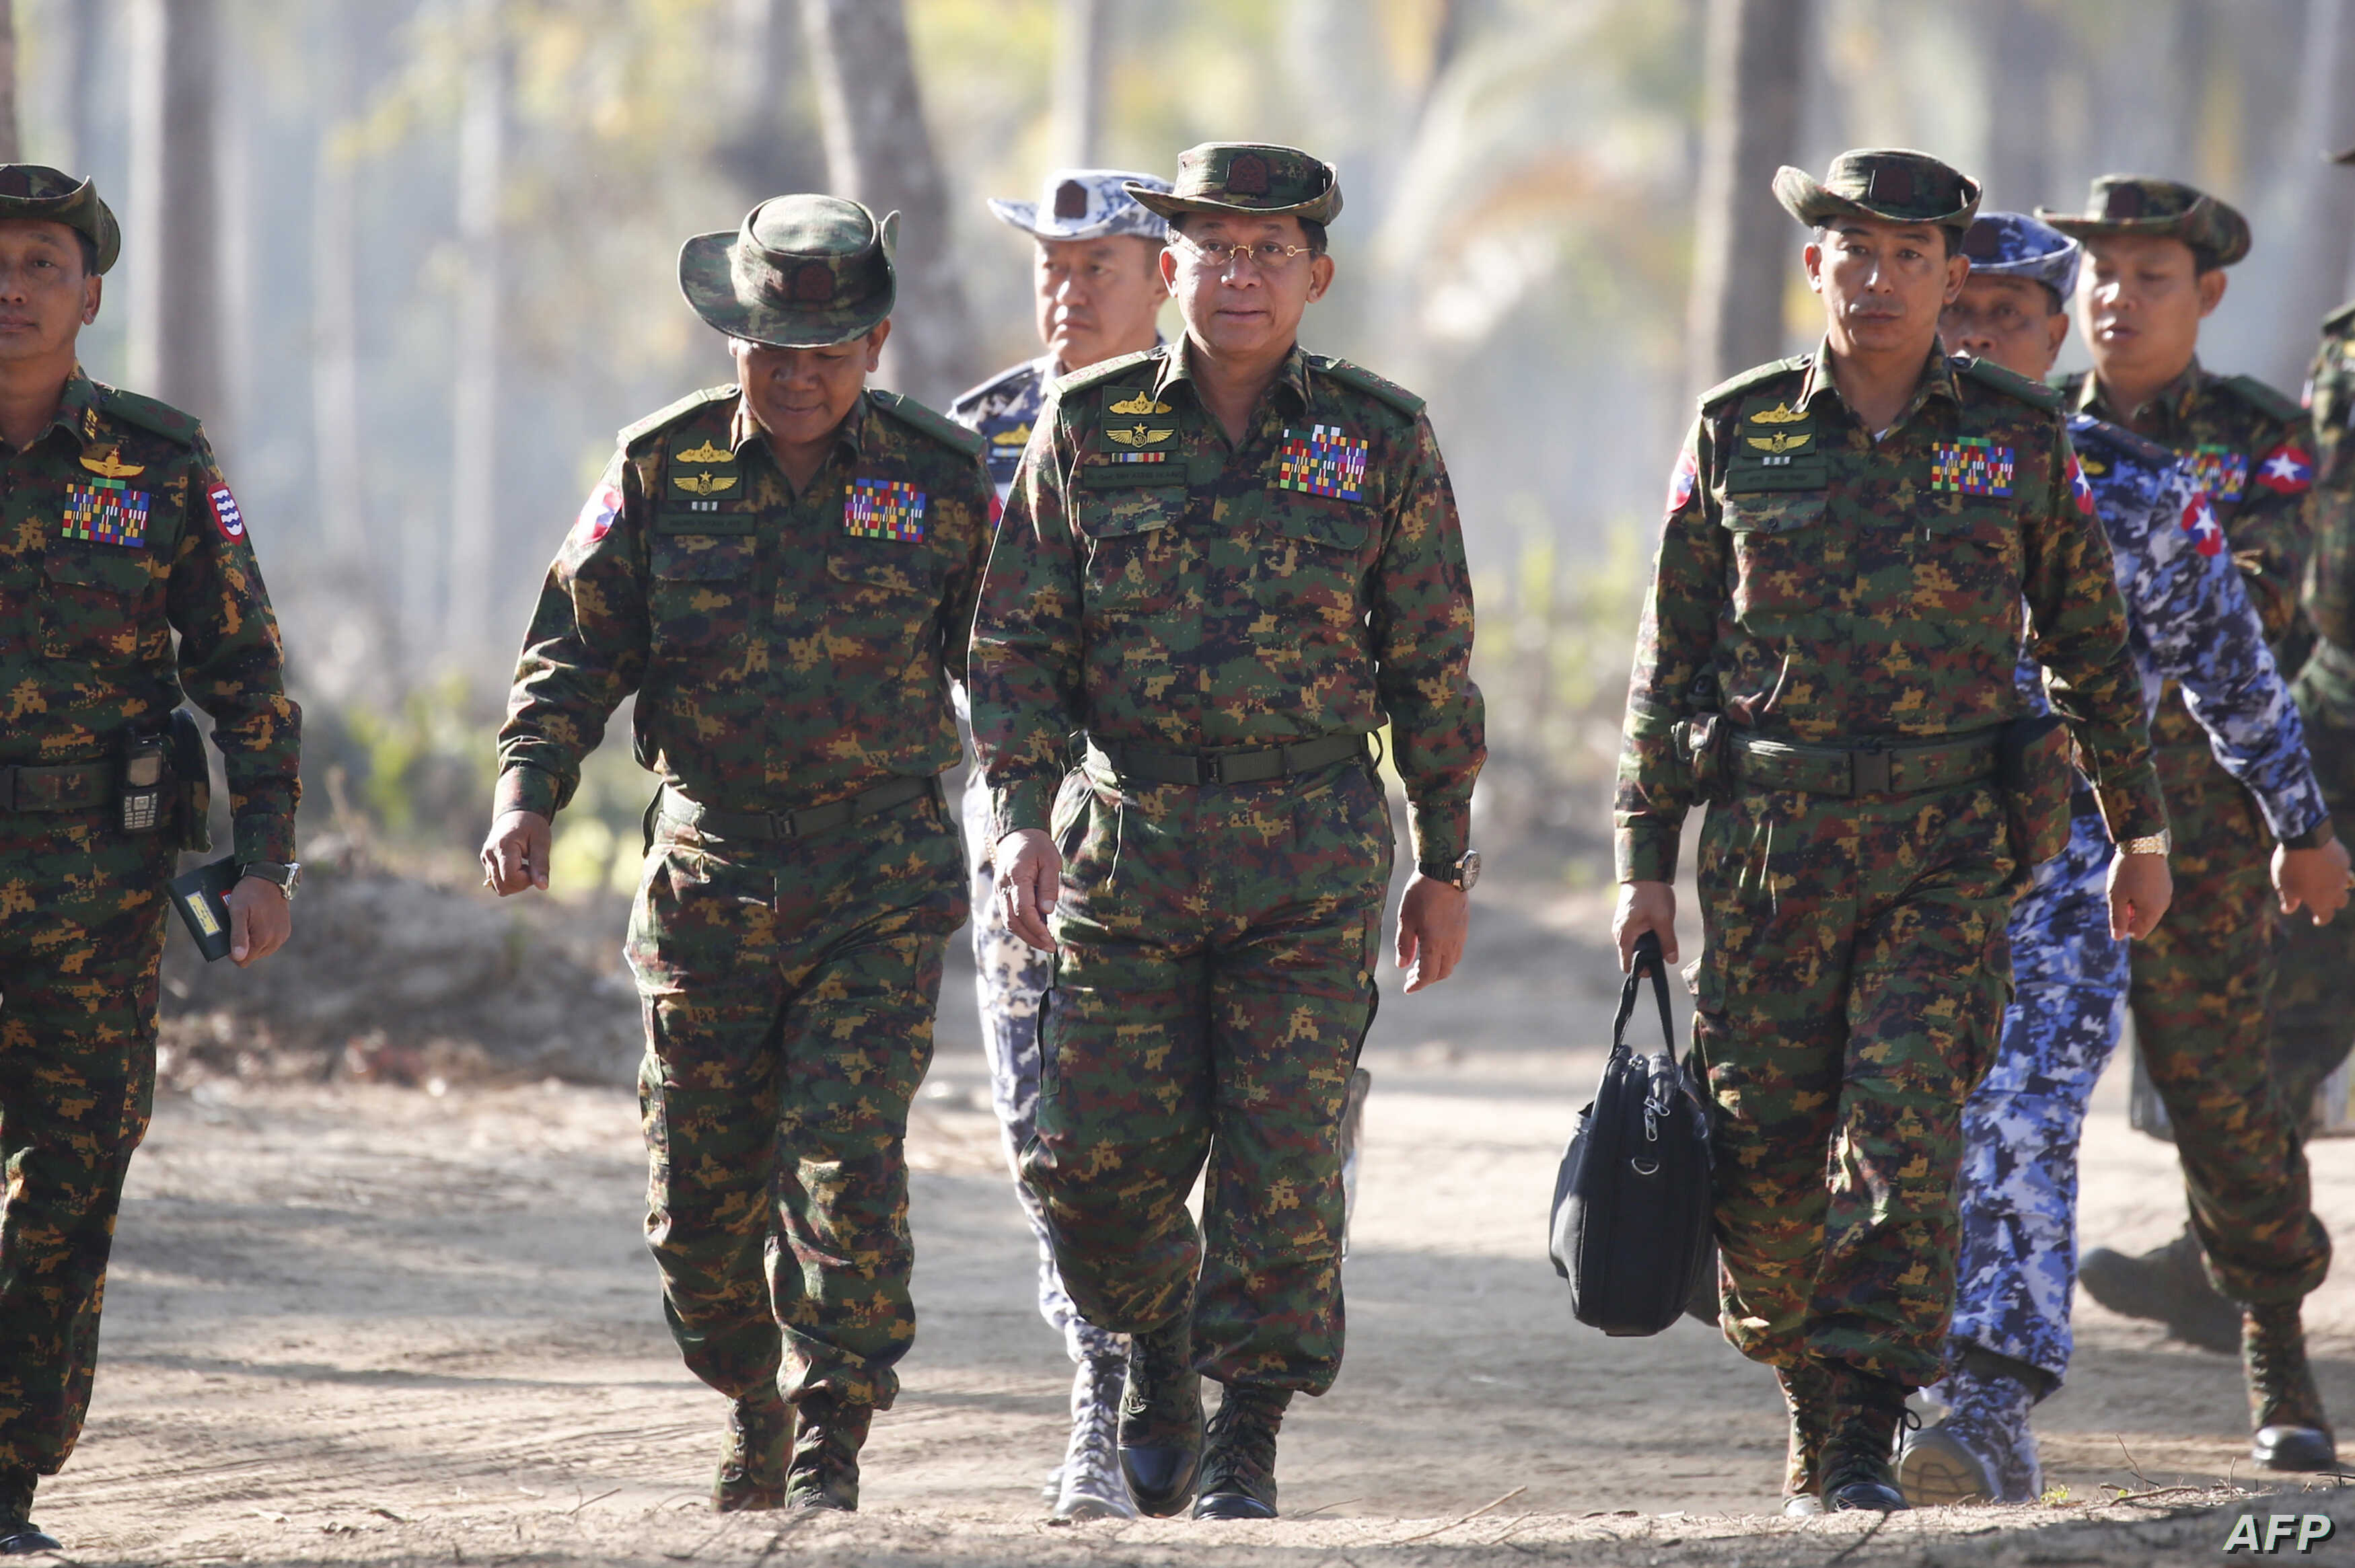 Facebook Ban on Myanmar Military Officials Sparks Debate | Voice of America - English